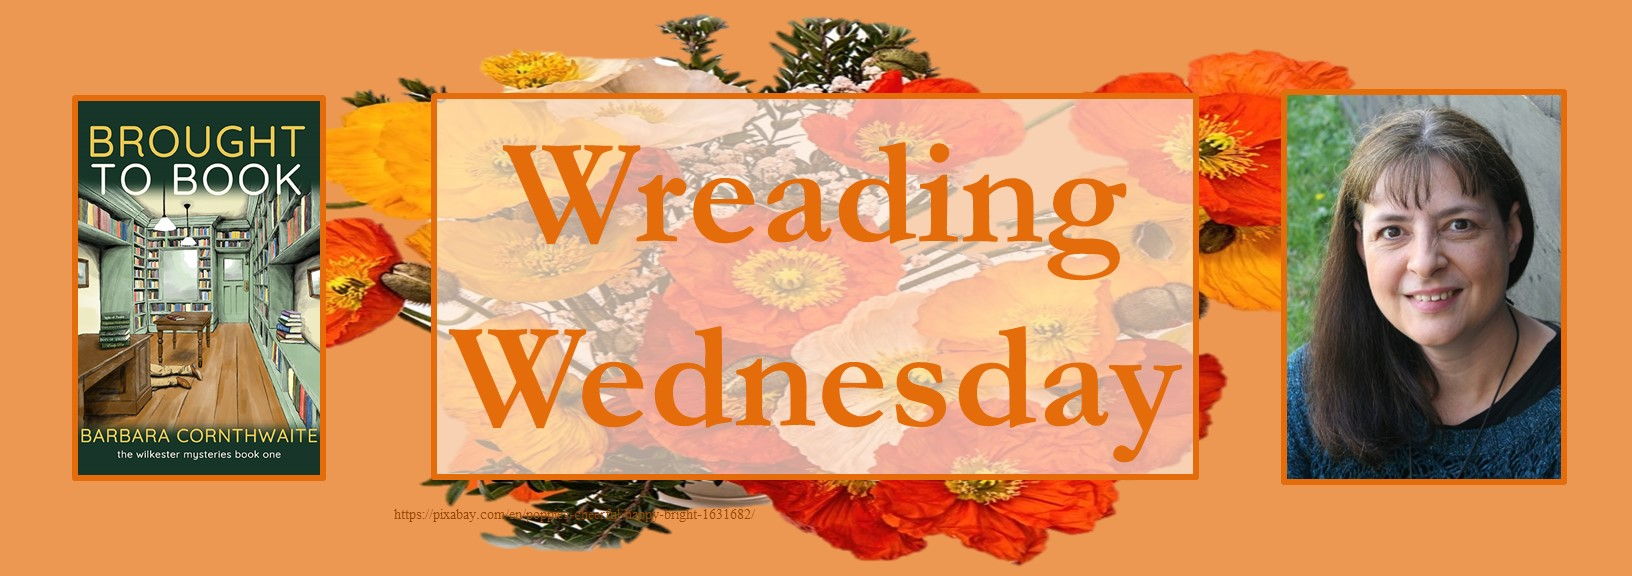 101420 - brought to book - wreading wednesday banner